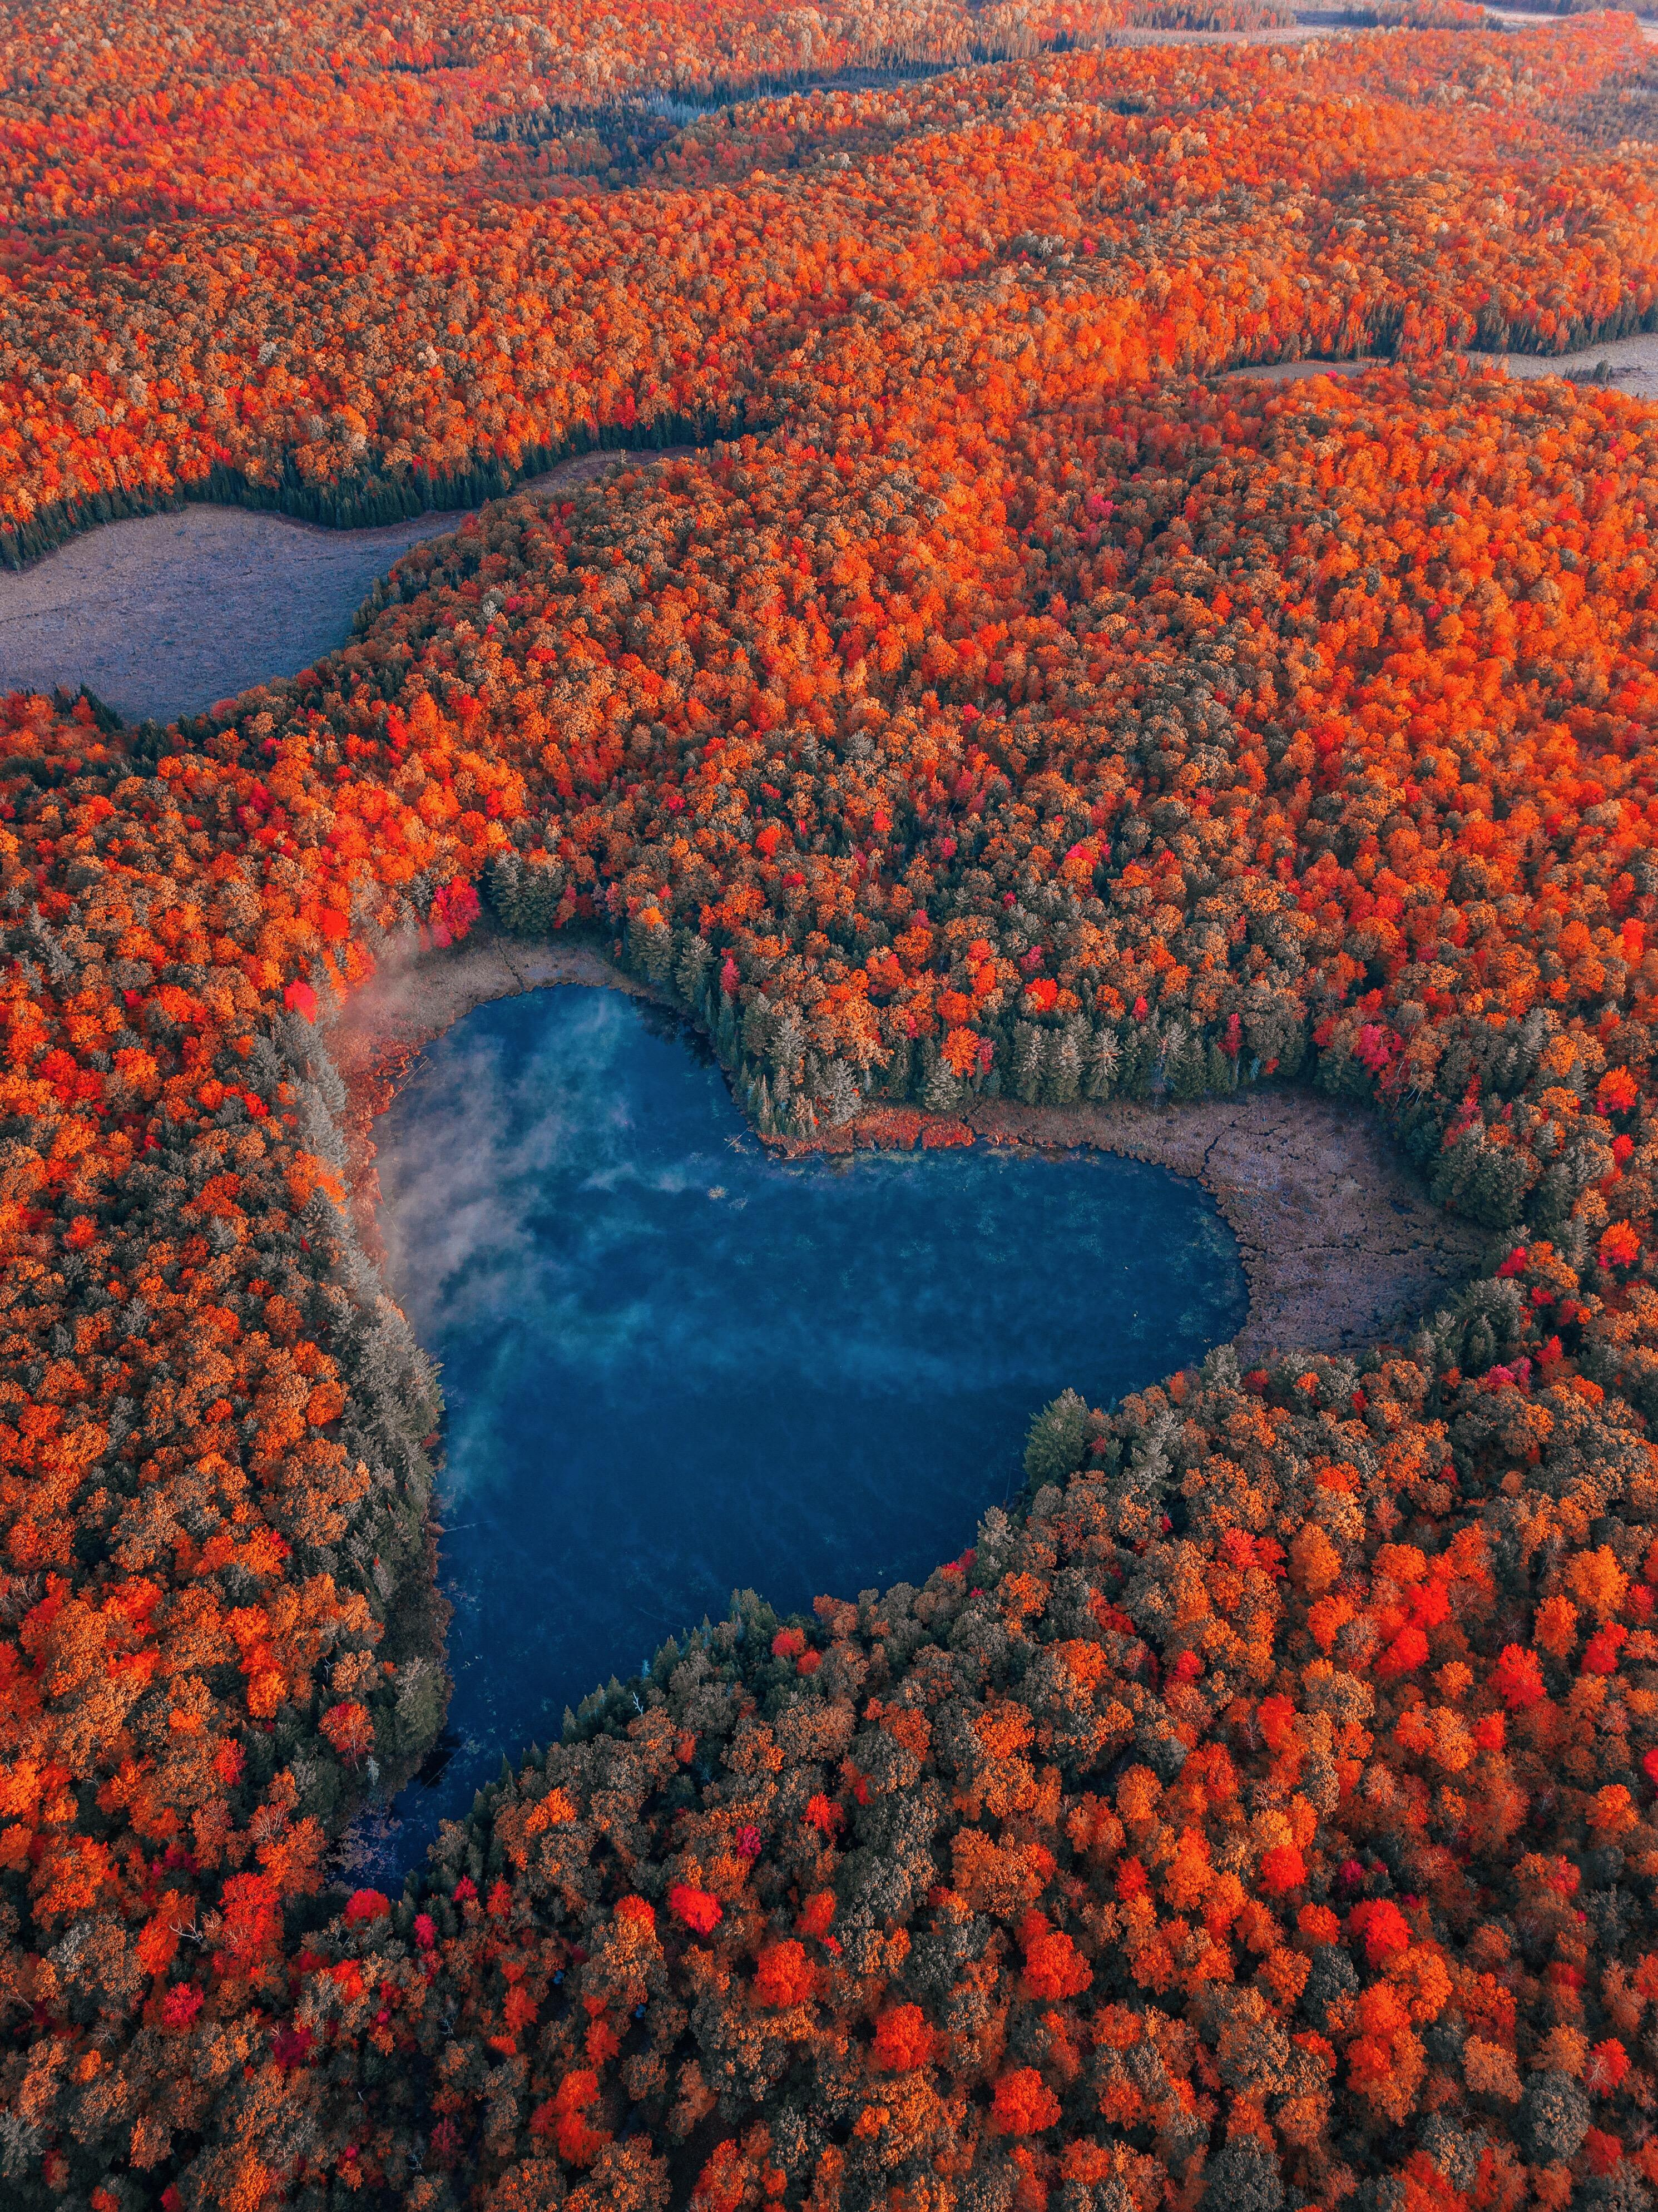 Beautiful heart shaped natural lake surrounded by fall foliage in Ontario, Canada